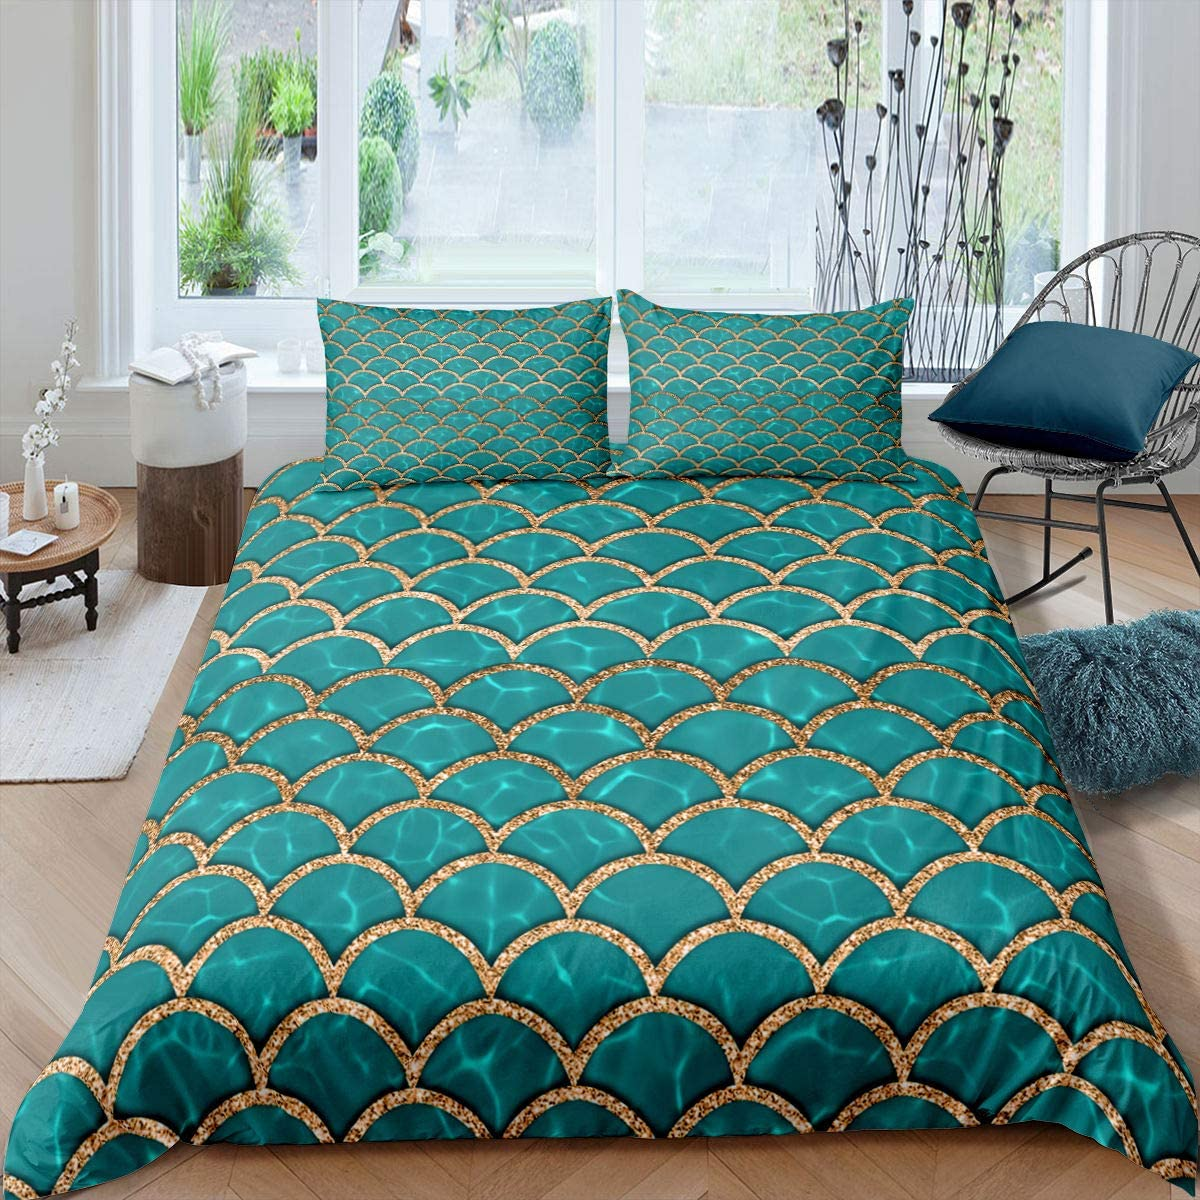 Mermaid Bedding Set Directly managed store Green Fish Decor Cover Max 58% OFF Comforter Scales